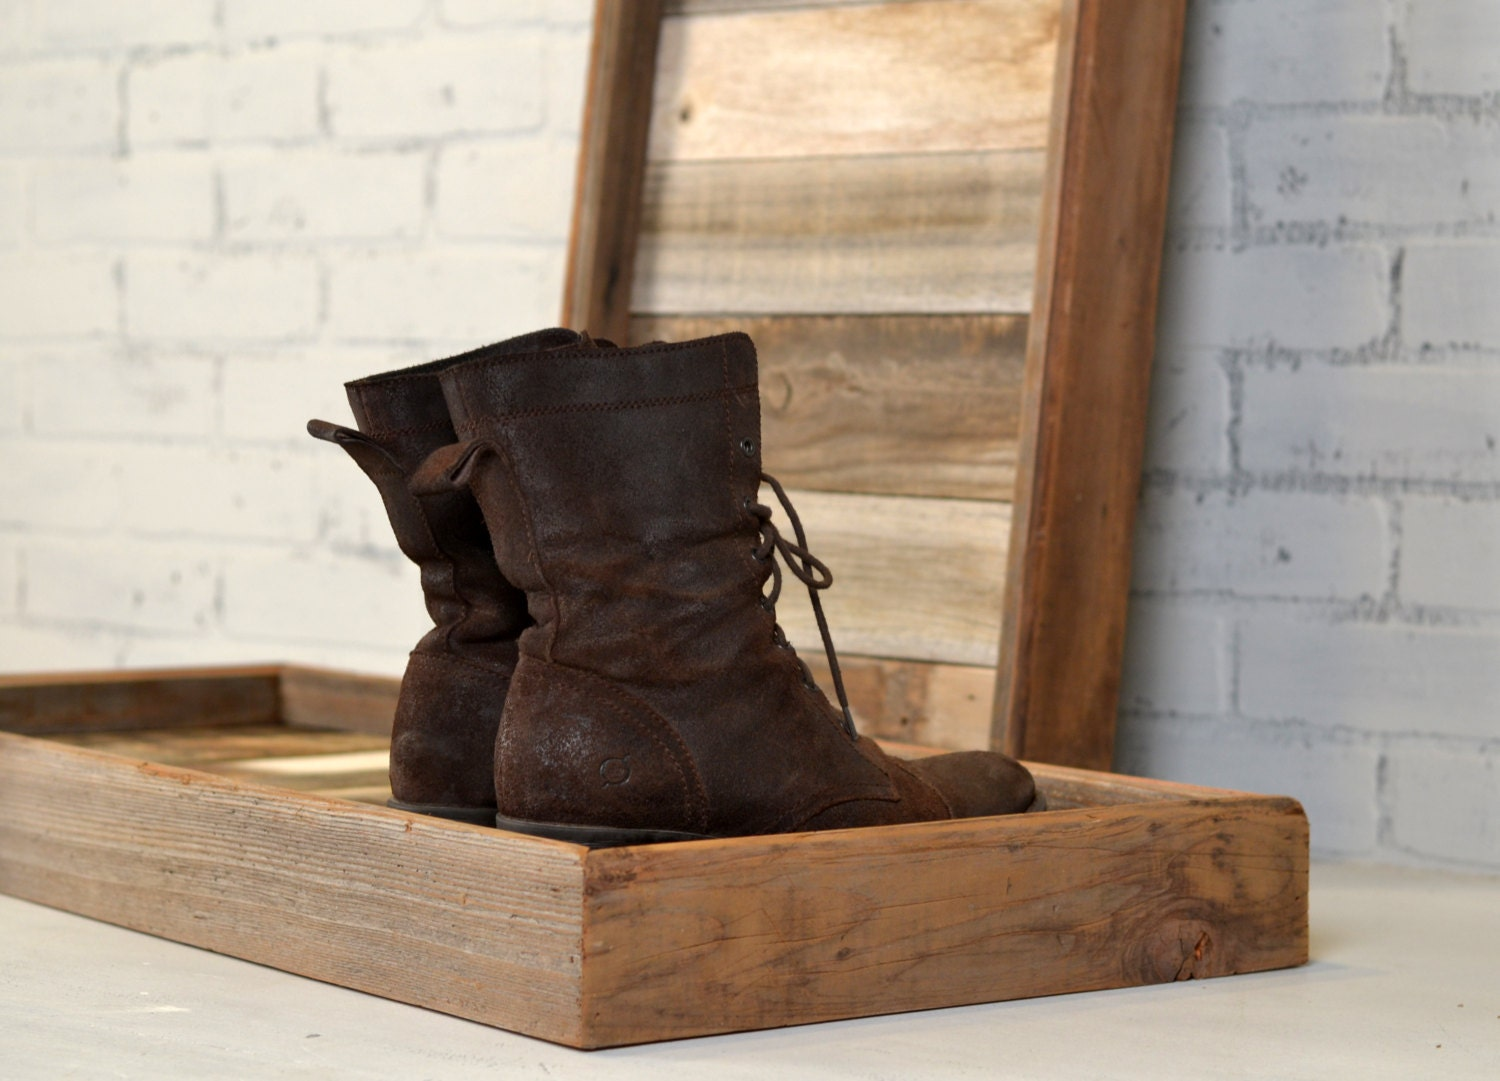 Boot Tray Made From Reclaimed Wood Shoe Storage Entryway Organization 36 Inches Long By 15 Inches Wide In Stock Same Day Shipping